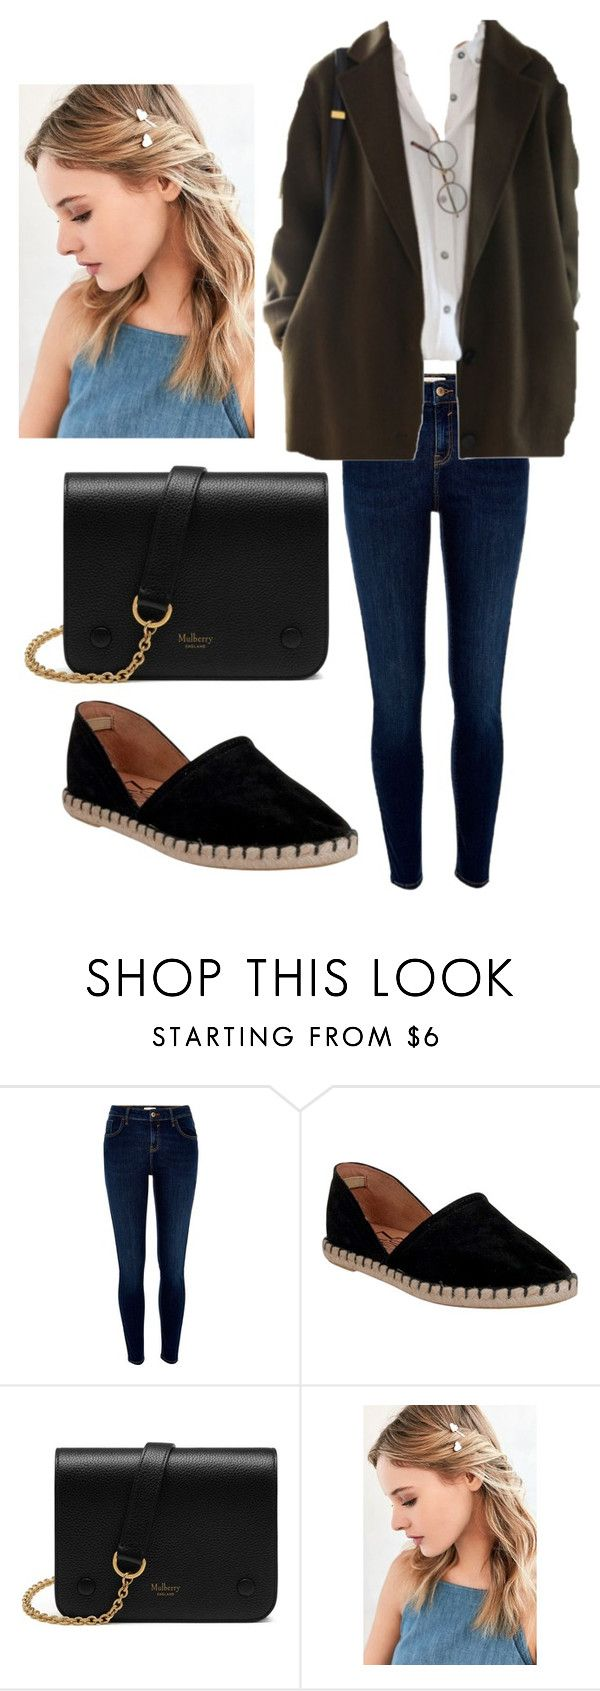 """""""Untitled #84"""" by leilabas ❤ liked on Polyvore featuring River Island, Miz Mooz, Mulberry and Urban Outfitters"""